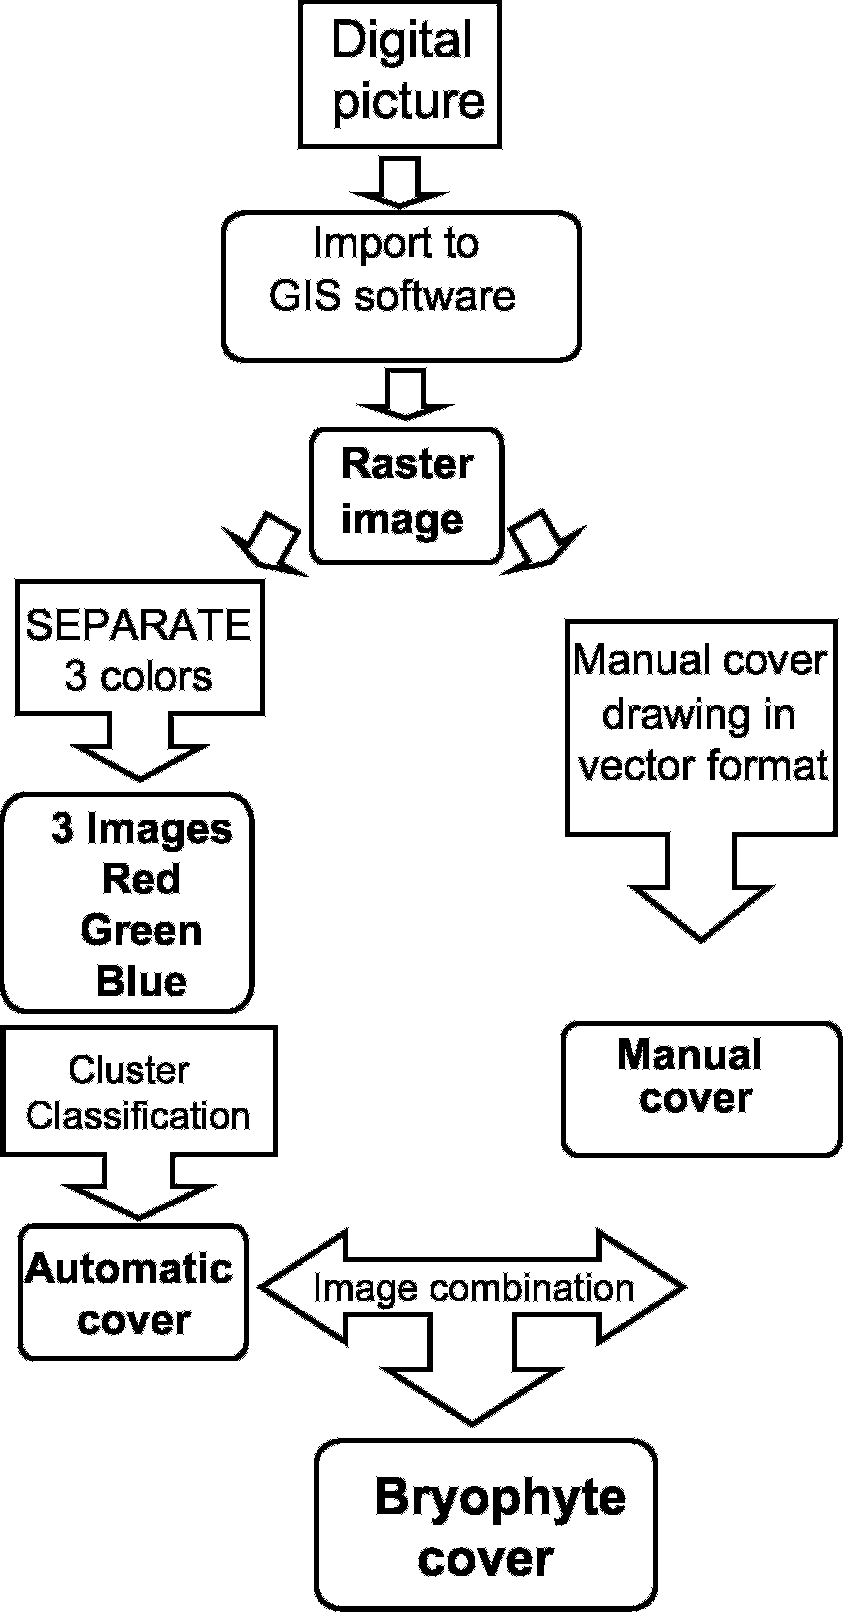 medium resolution of diagram of the successive steps to estimate bryophyte cover from digitized images using idrisi kilimanjaro software